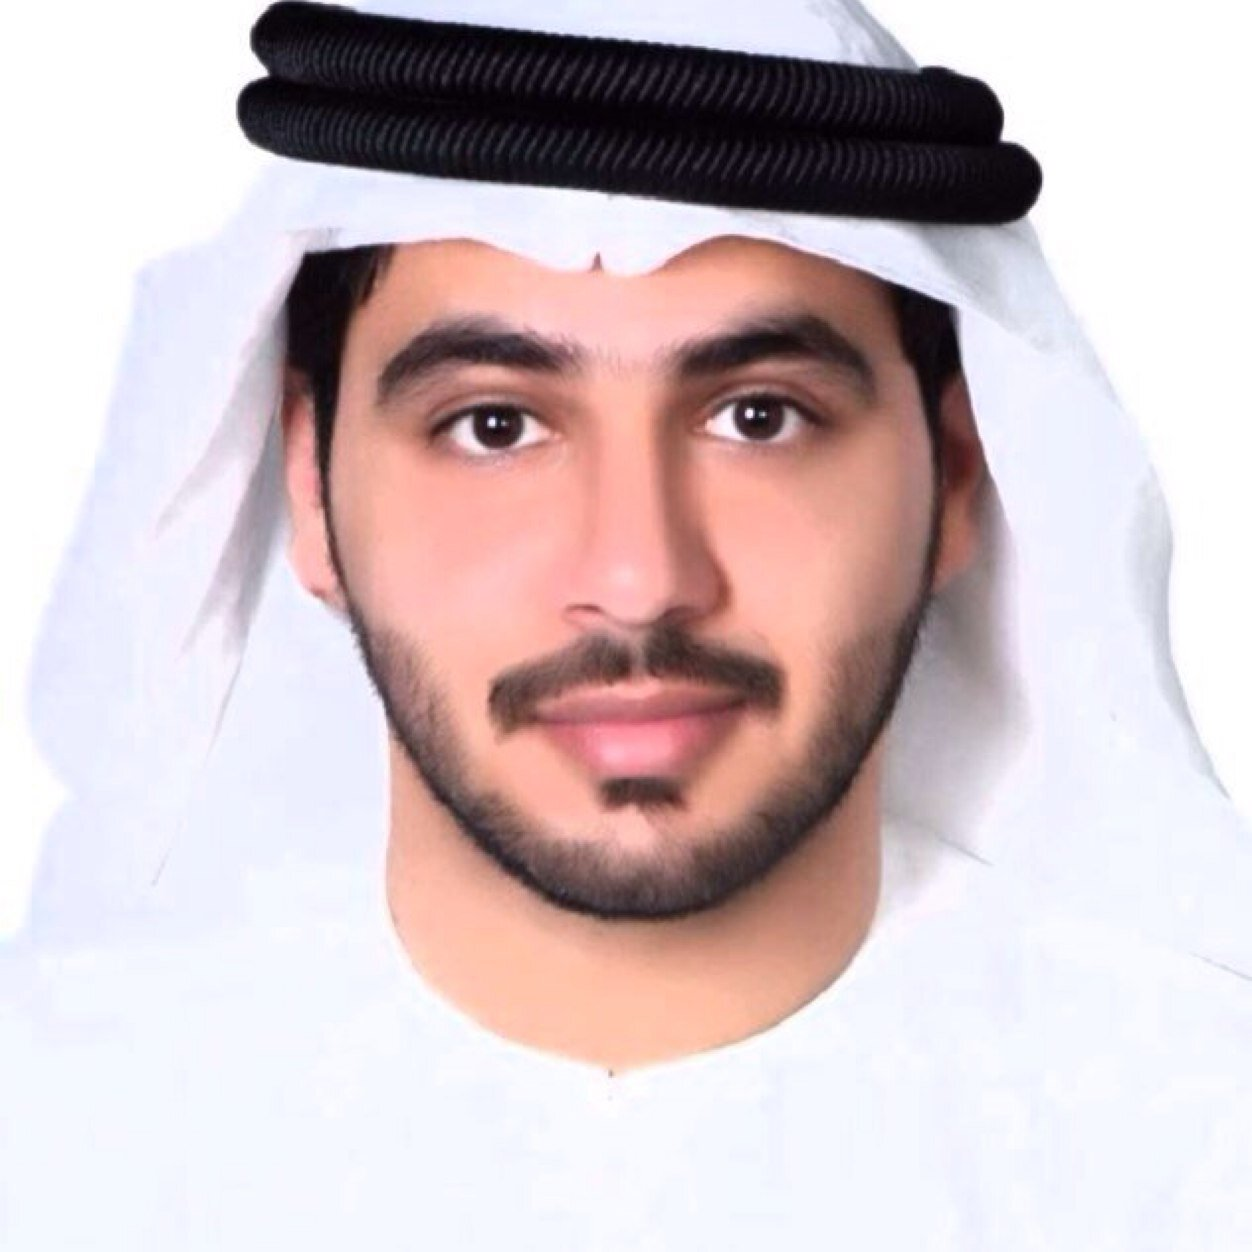 Two years after completing his sentence, Emirati activist Osama al-Najjar remains in detention